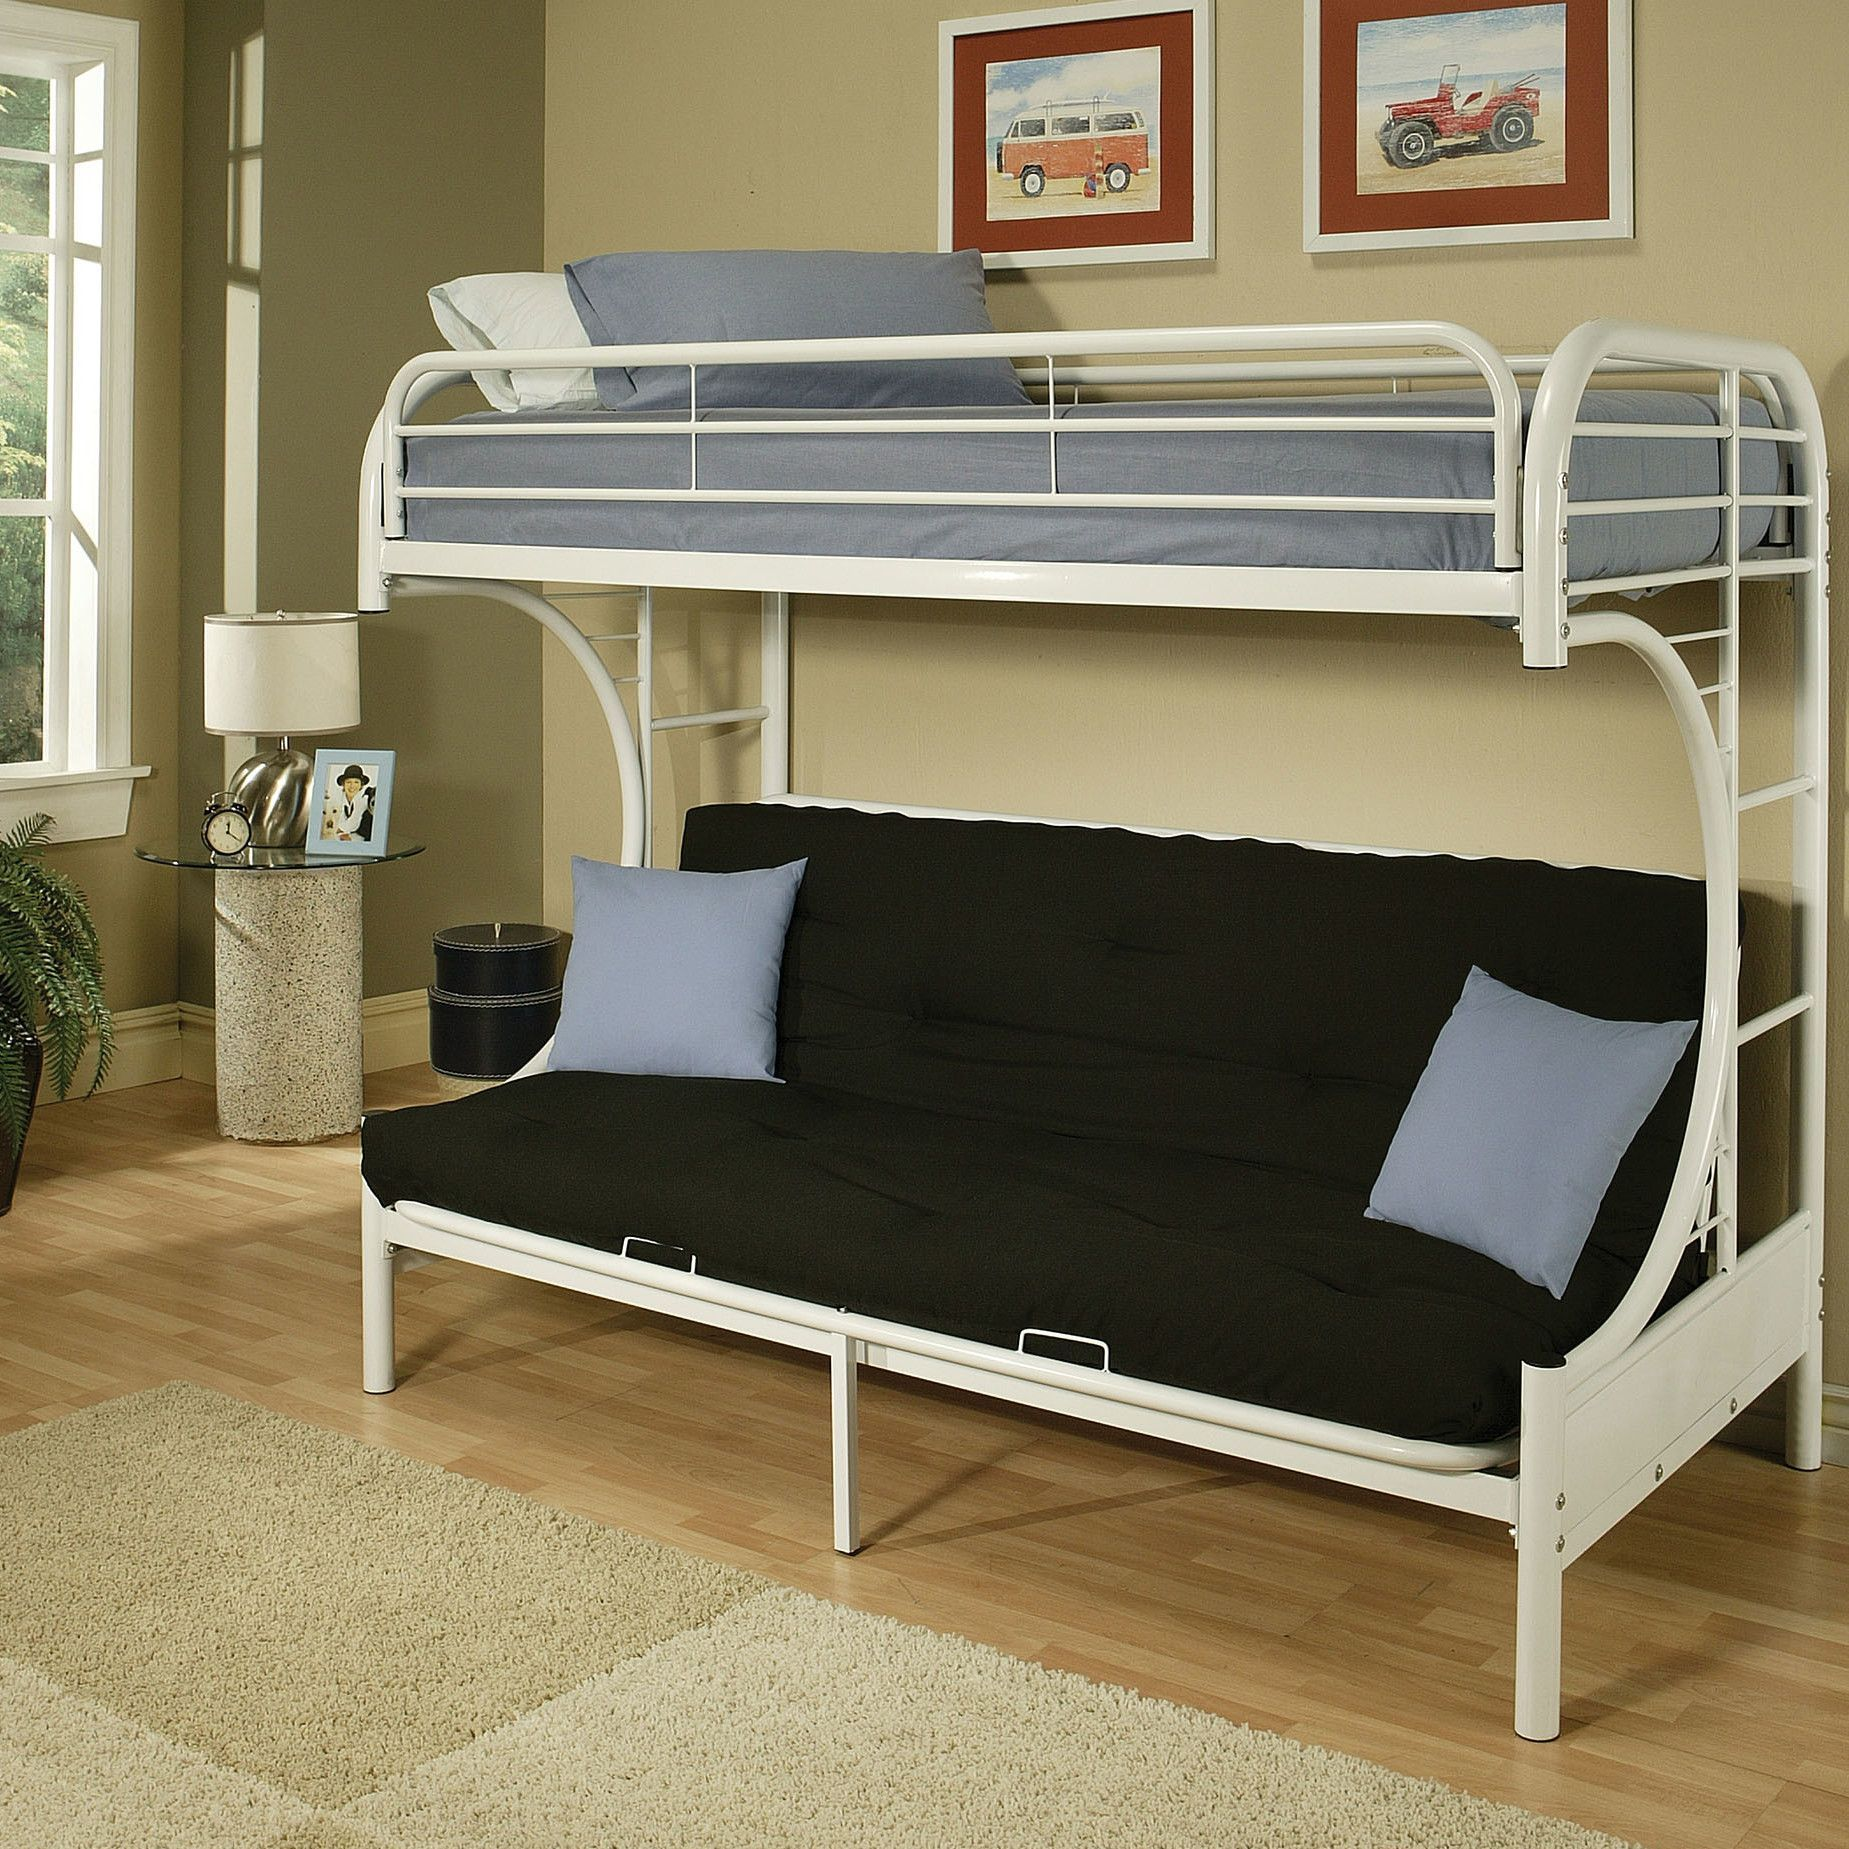 Eclipse Futon Bunk Bed White bunk beds, Bunk beds